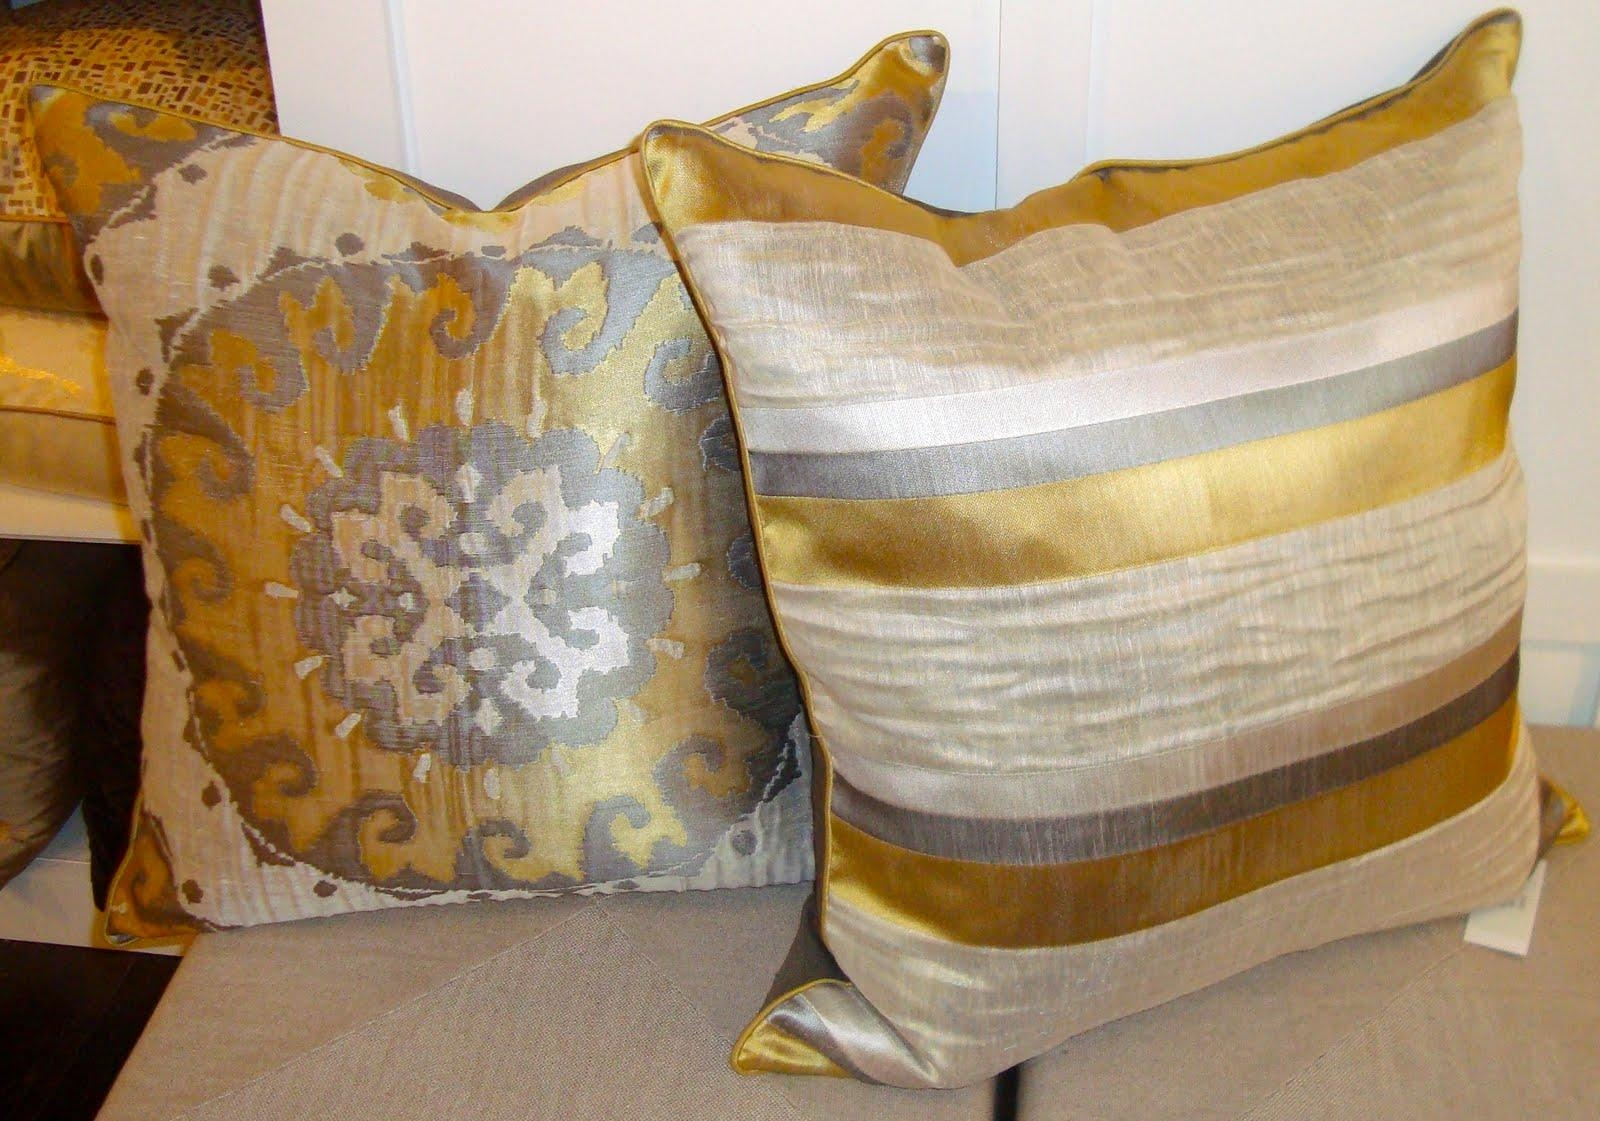 Throw Pillows Gif : Gold Sofa Pillows Decor Pretty Gold Throw Pillows For Home Accessories Ideas - TheSofa